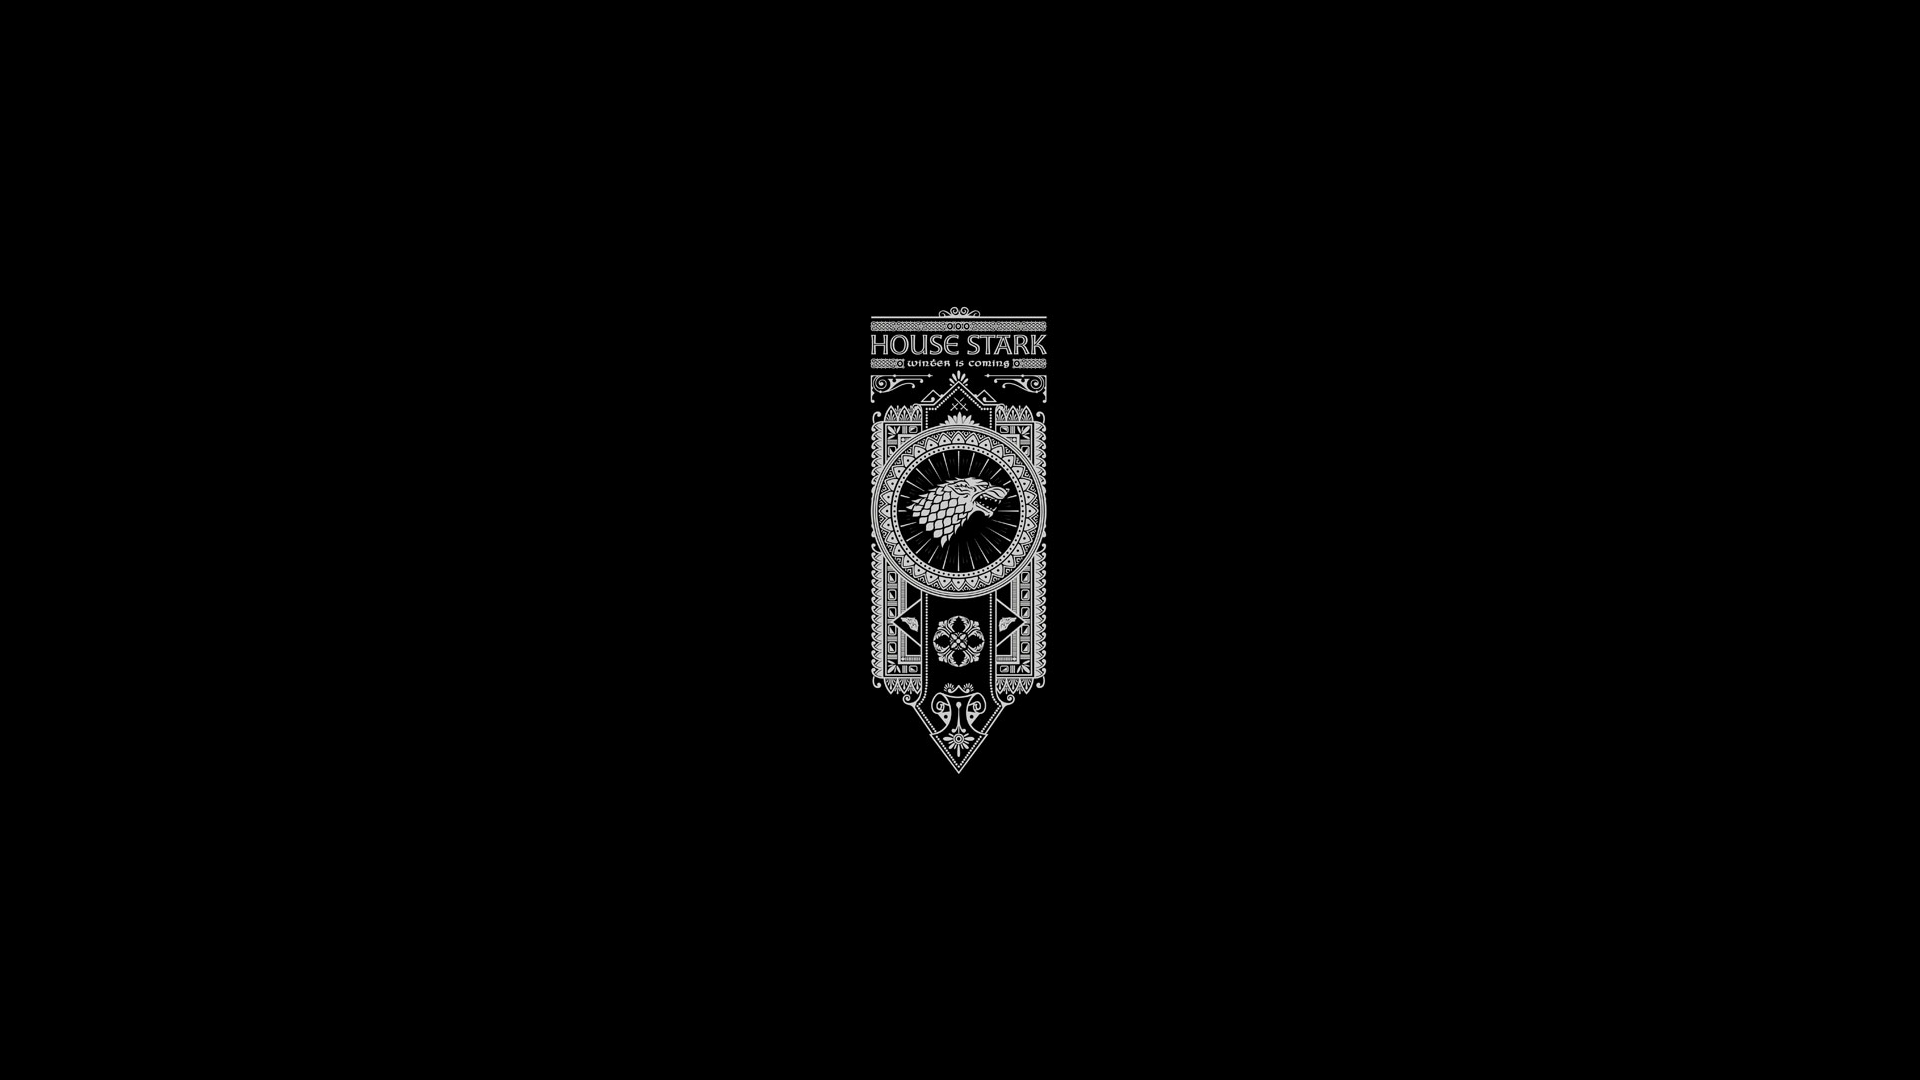 House Stark Wallpapers Wallpaper Cave In 2019 Minimalist